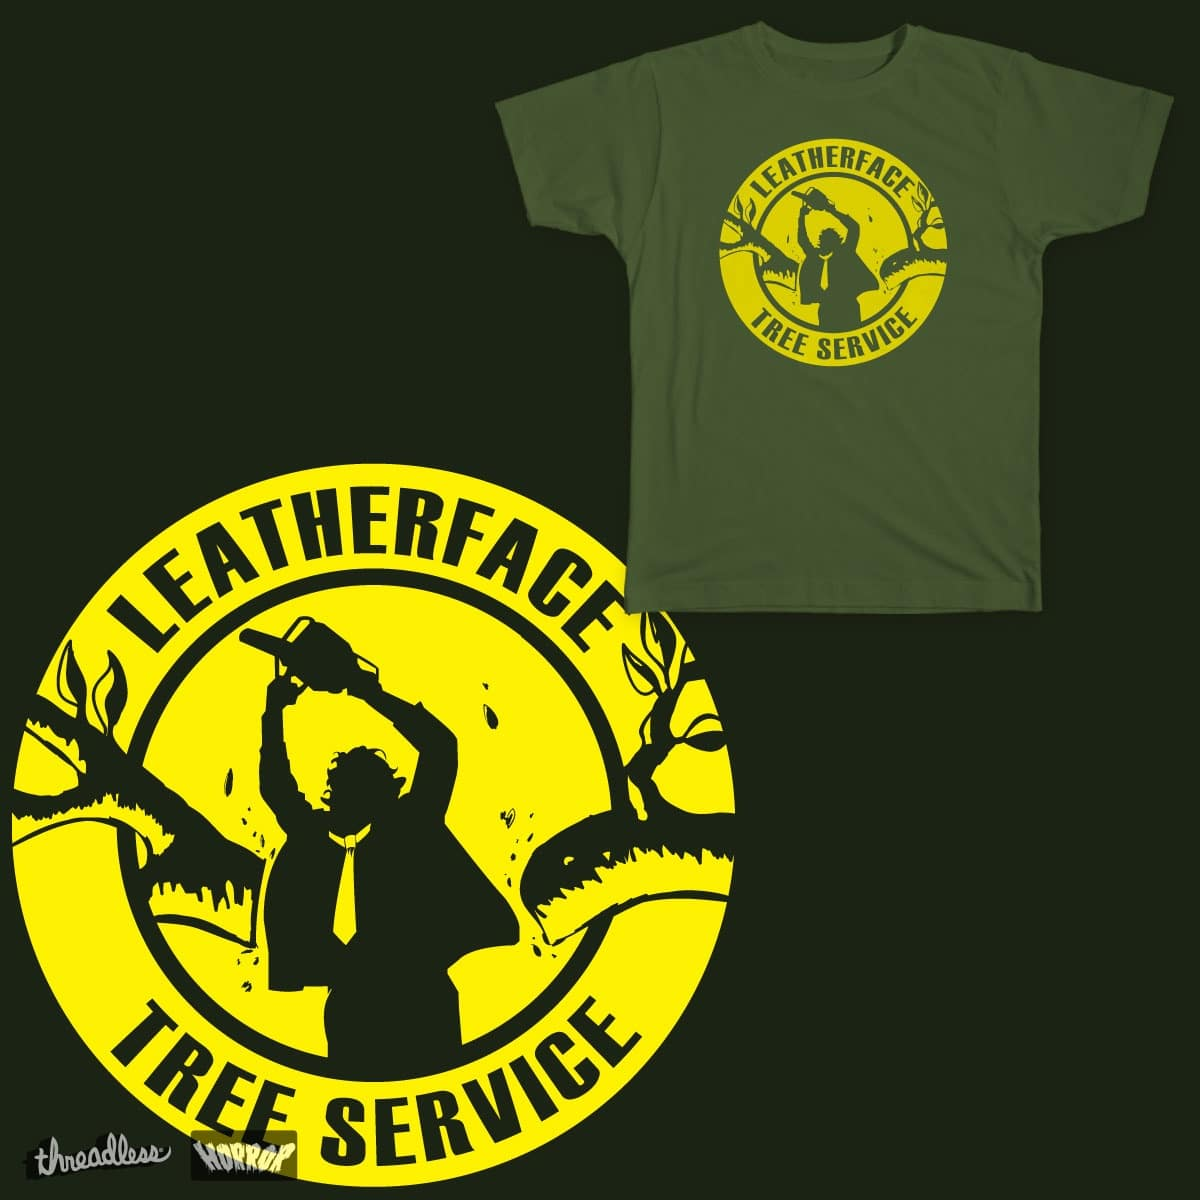 Leatherface Tree Service by Dan Smash on Threadless